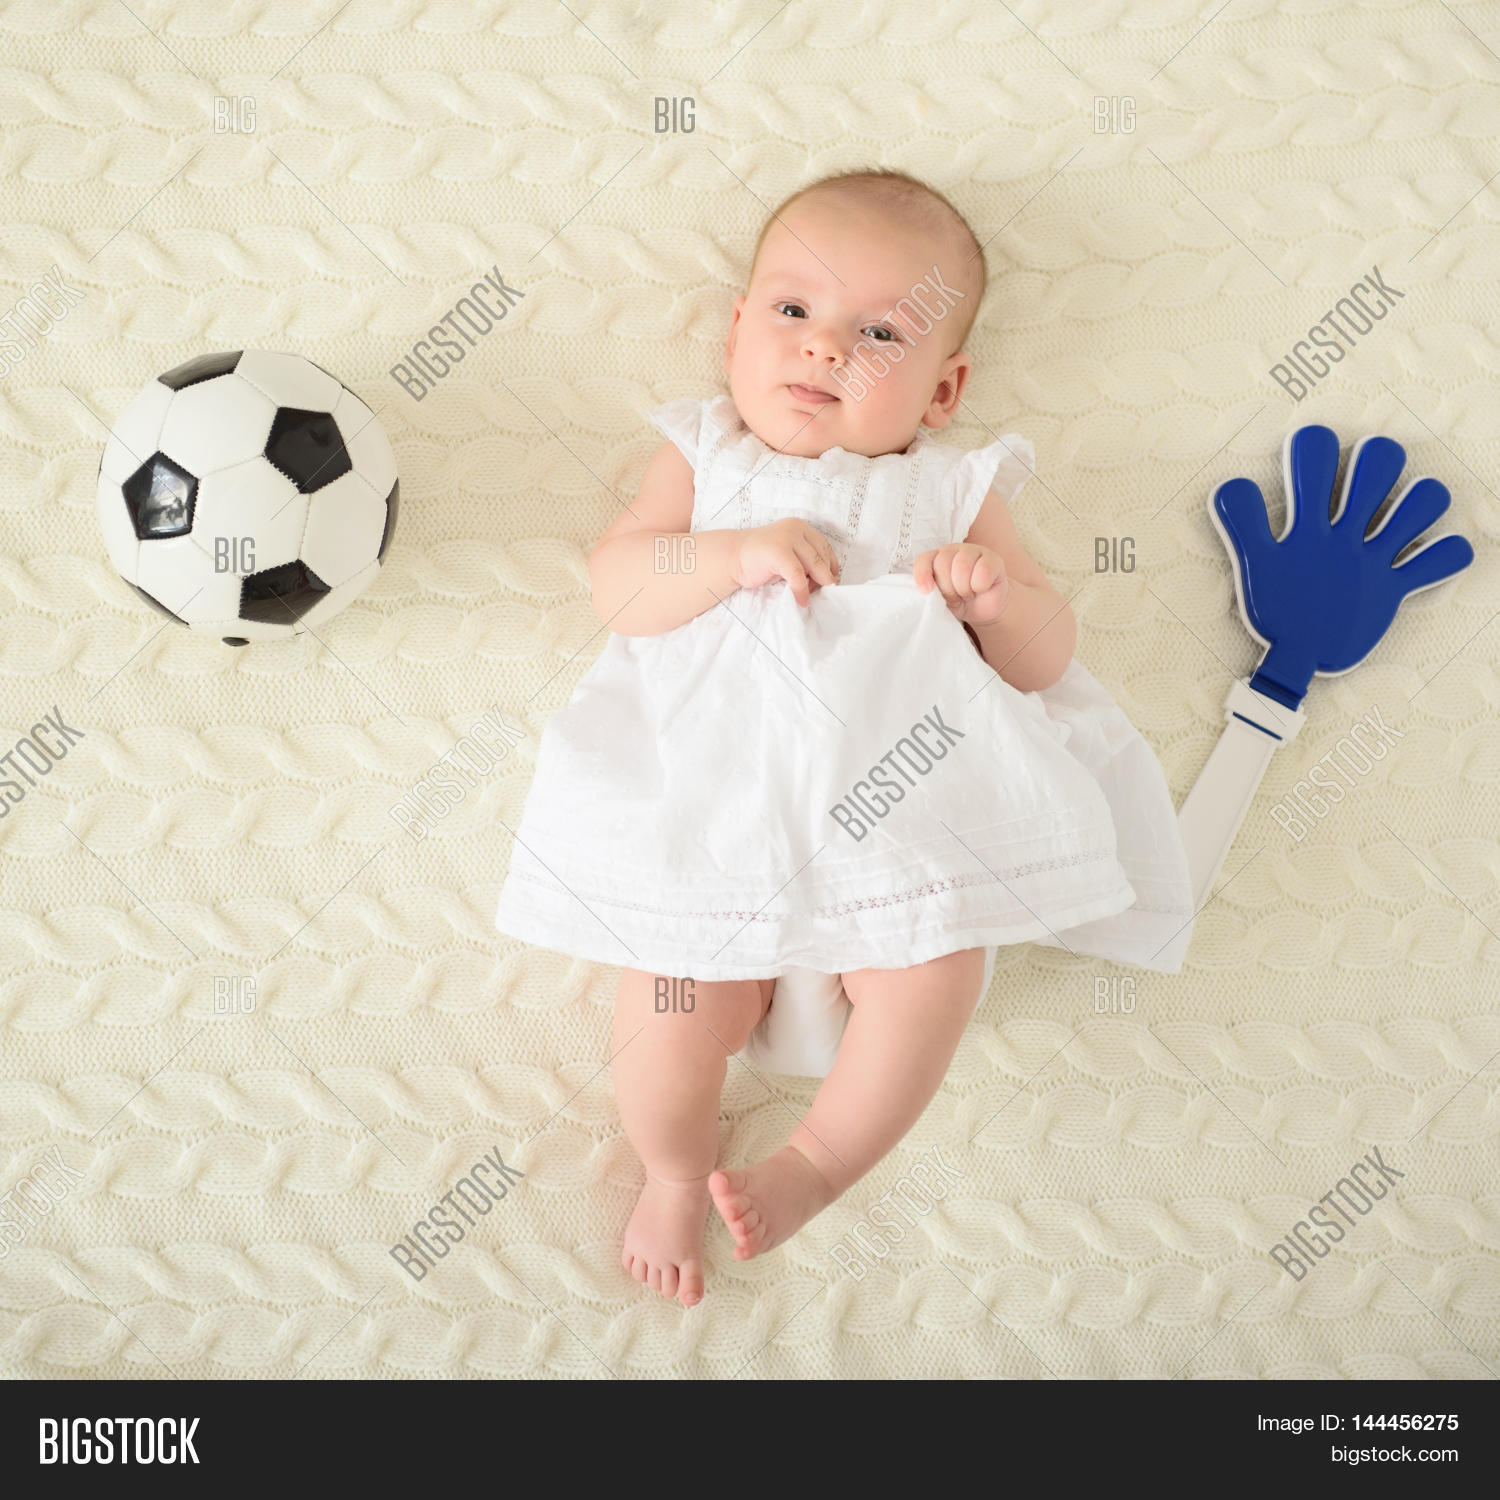 Smallest Football Fan Top View Image &